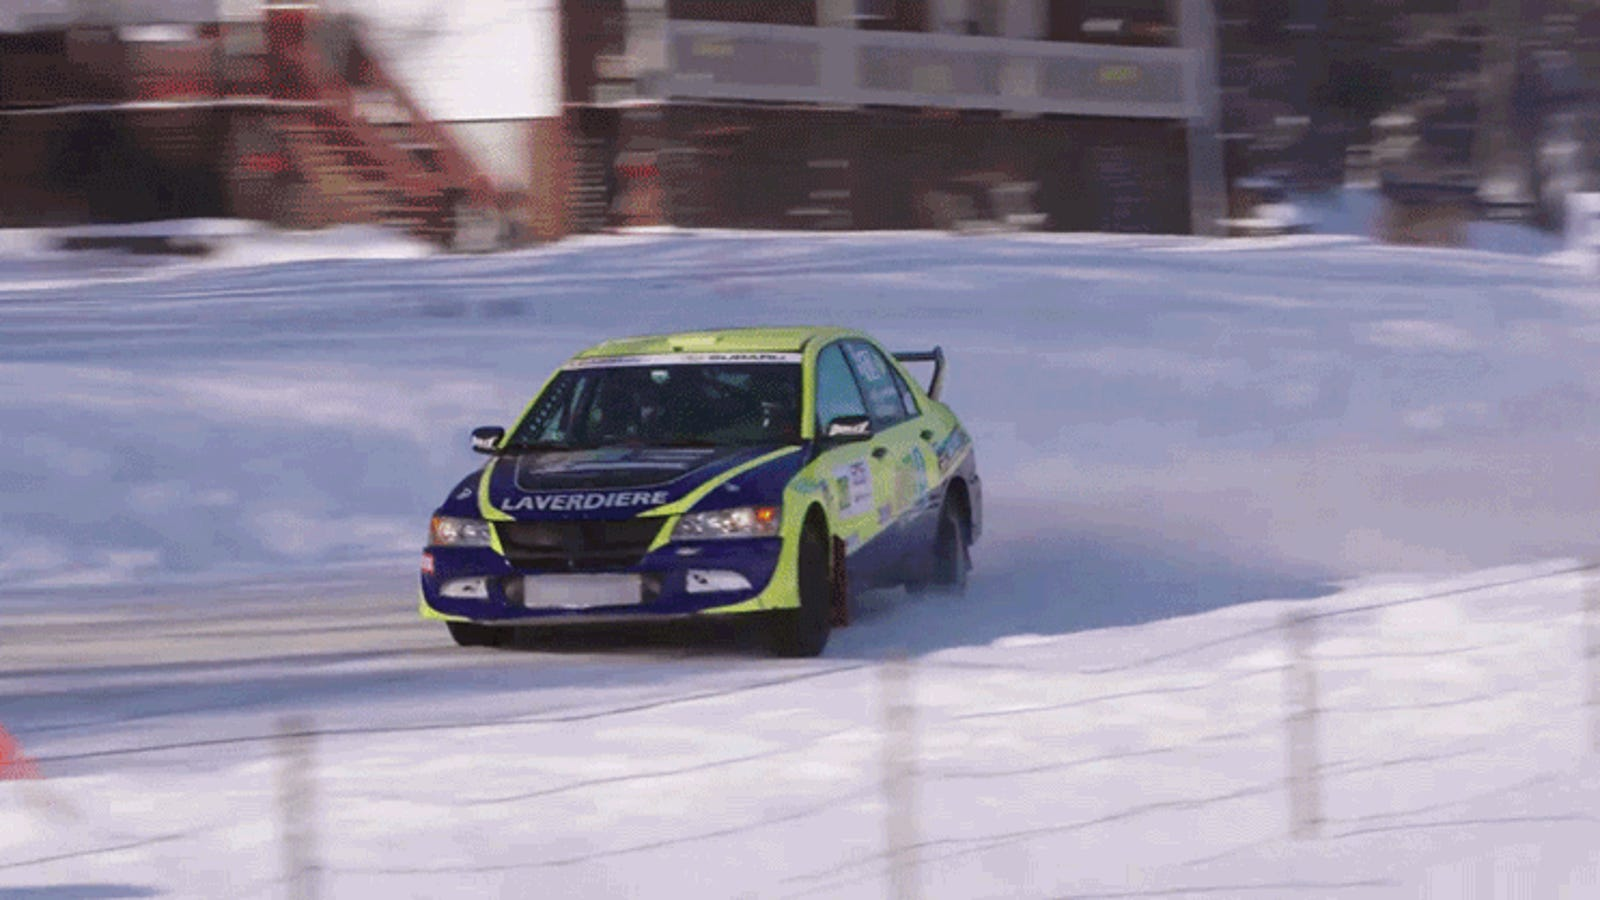 Please Let The World Rally Championship Race Come To Canada You Hosers